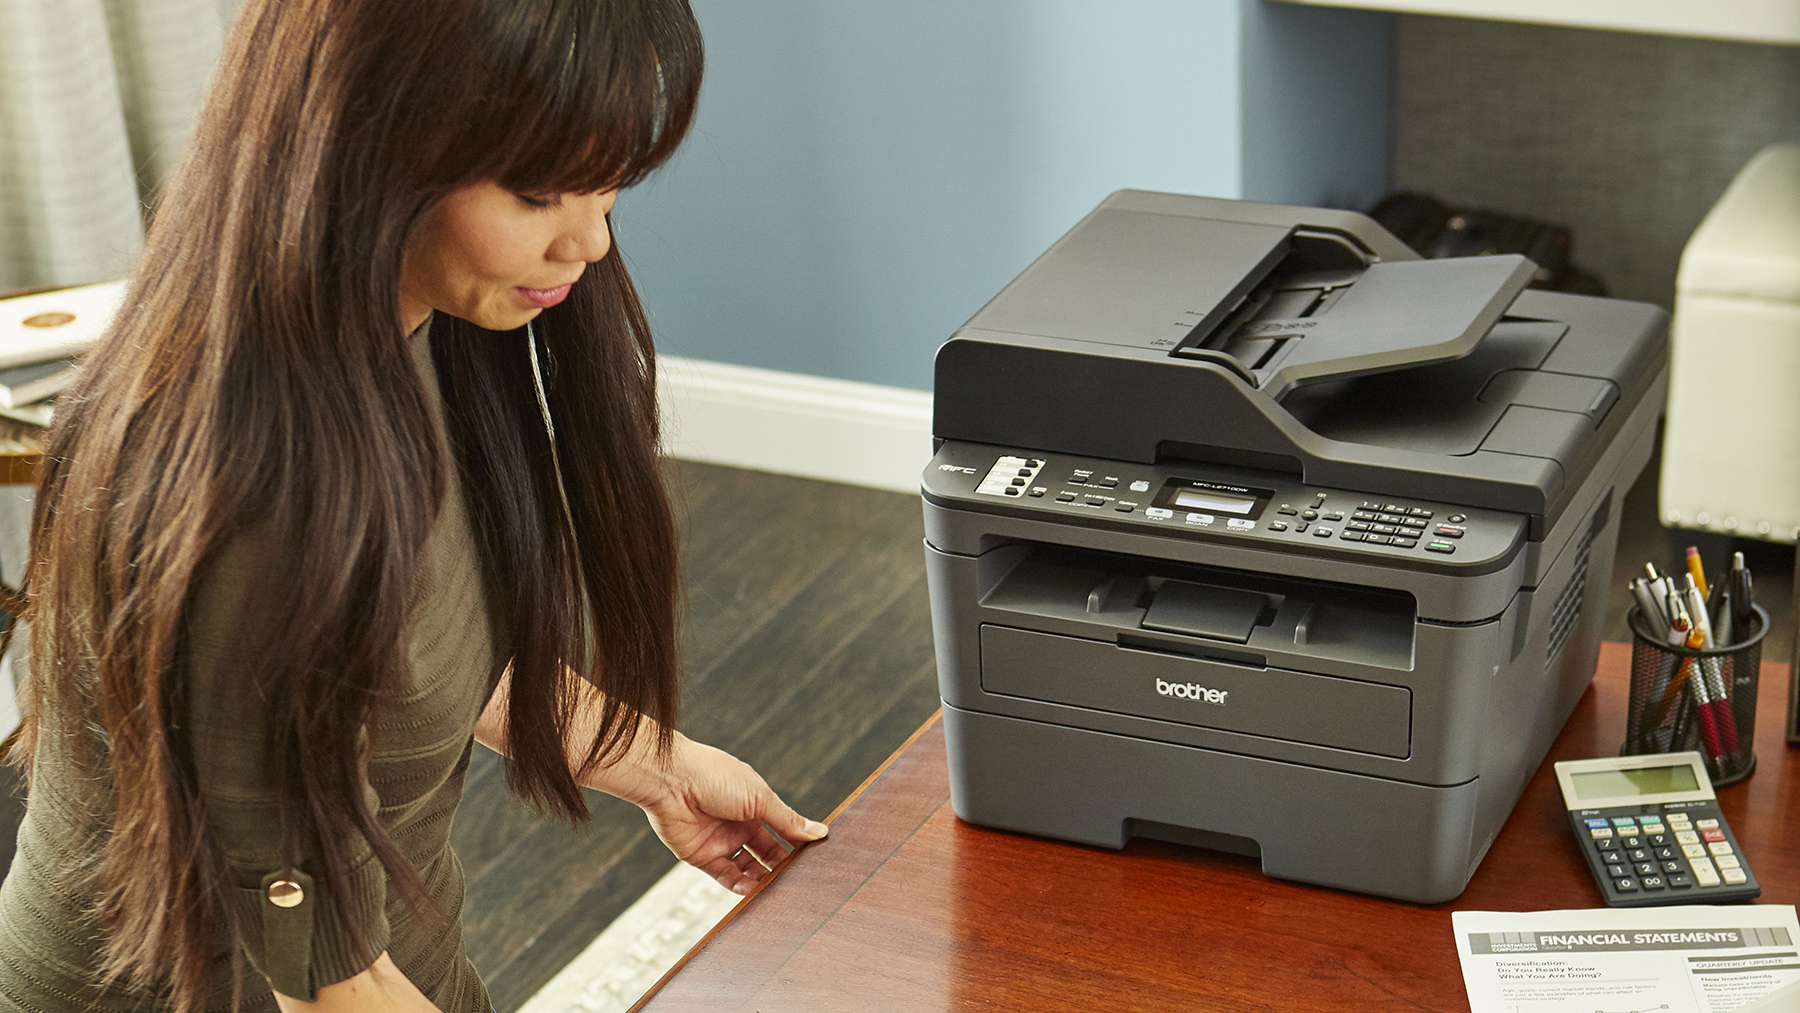 Best laser printer 2020: top picks for color and mono printing | TechRadar